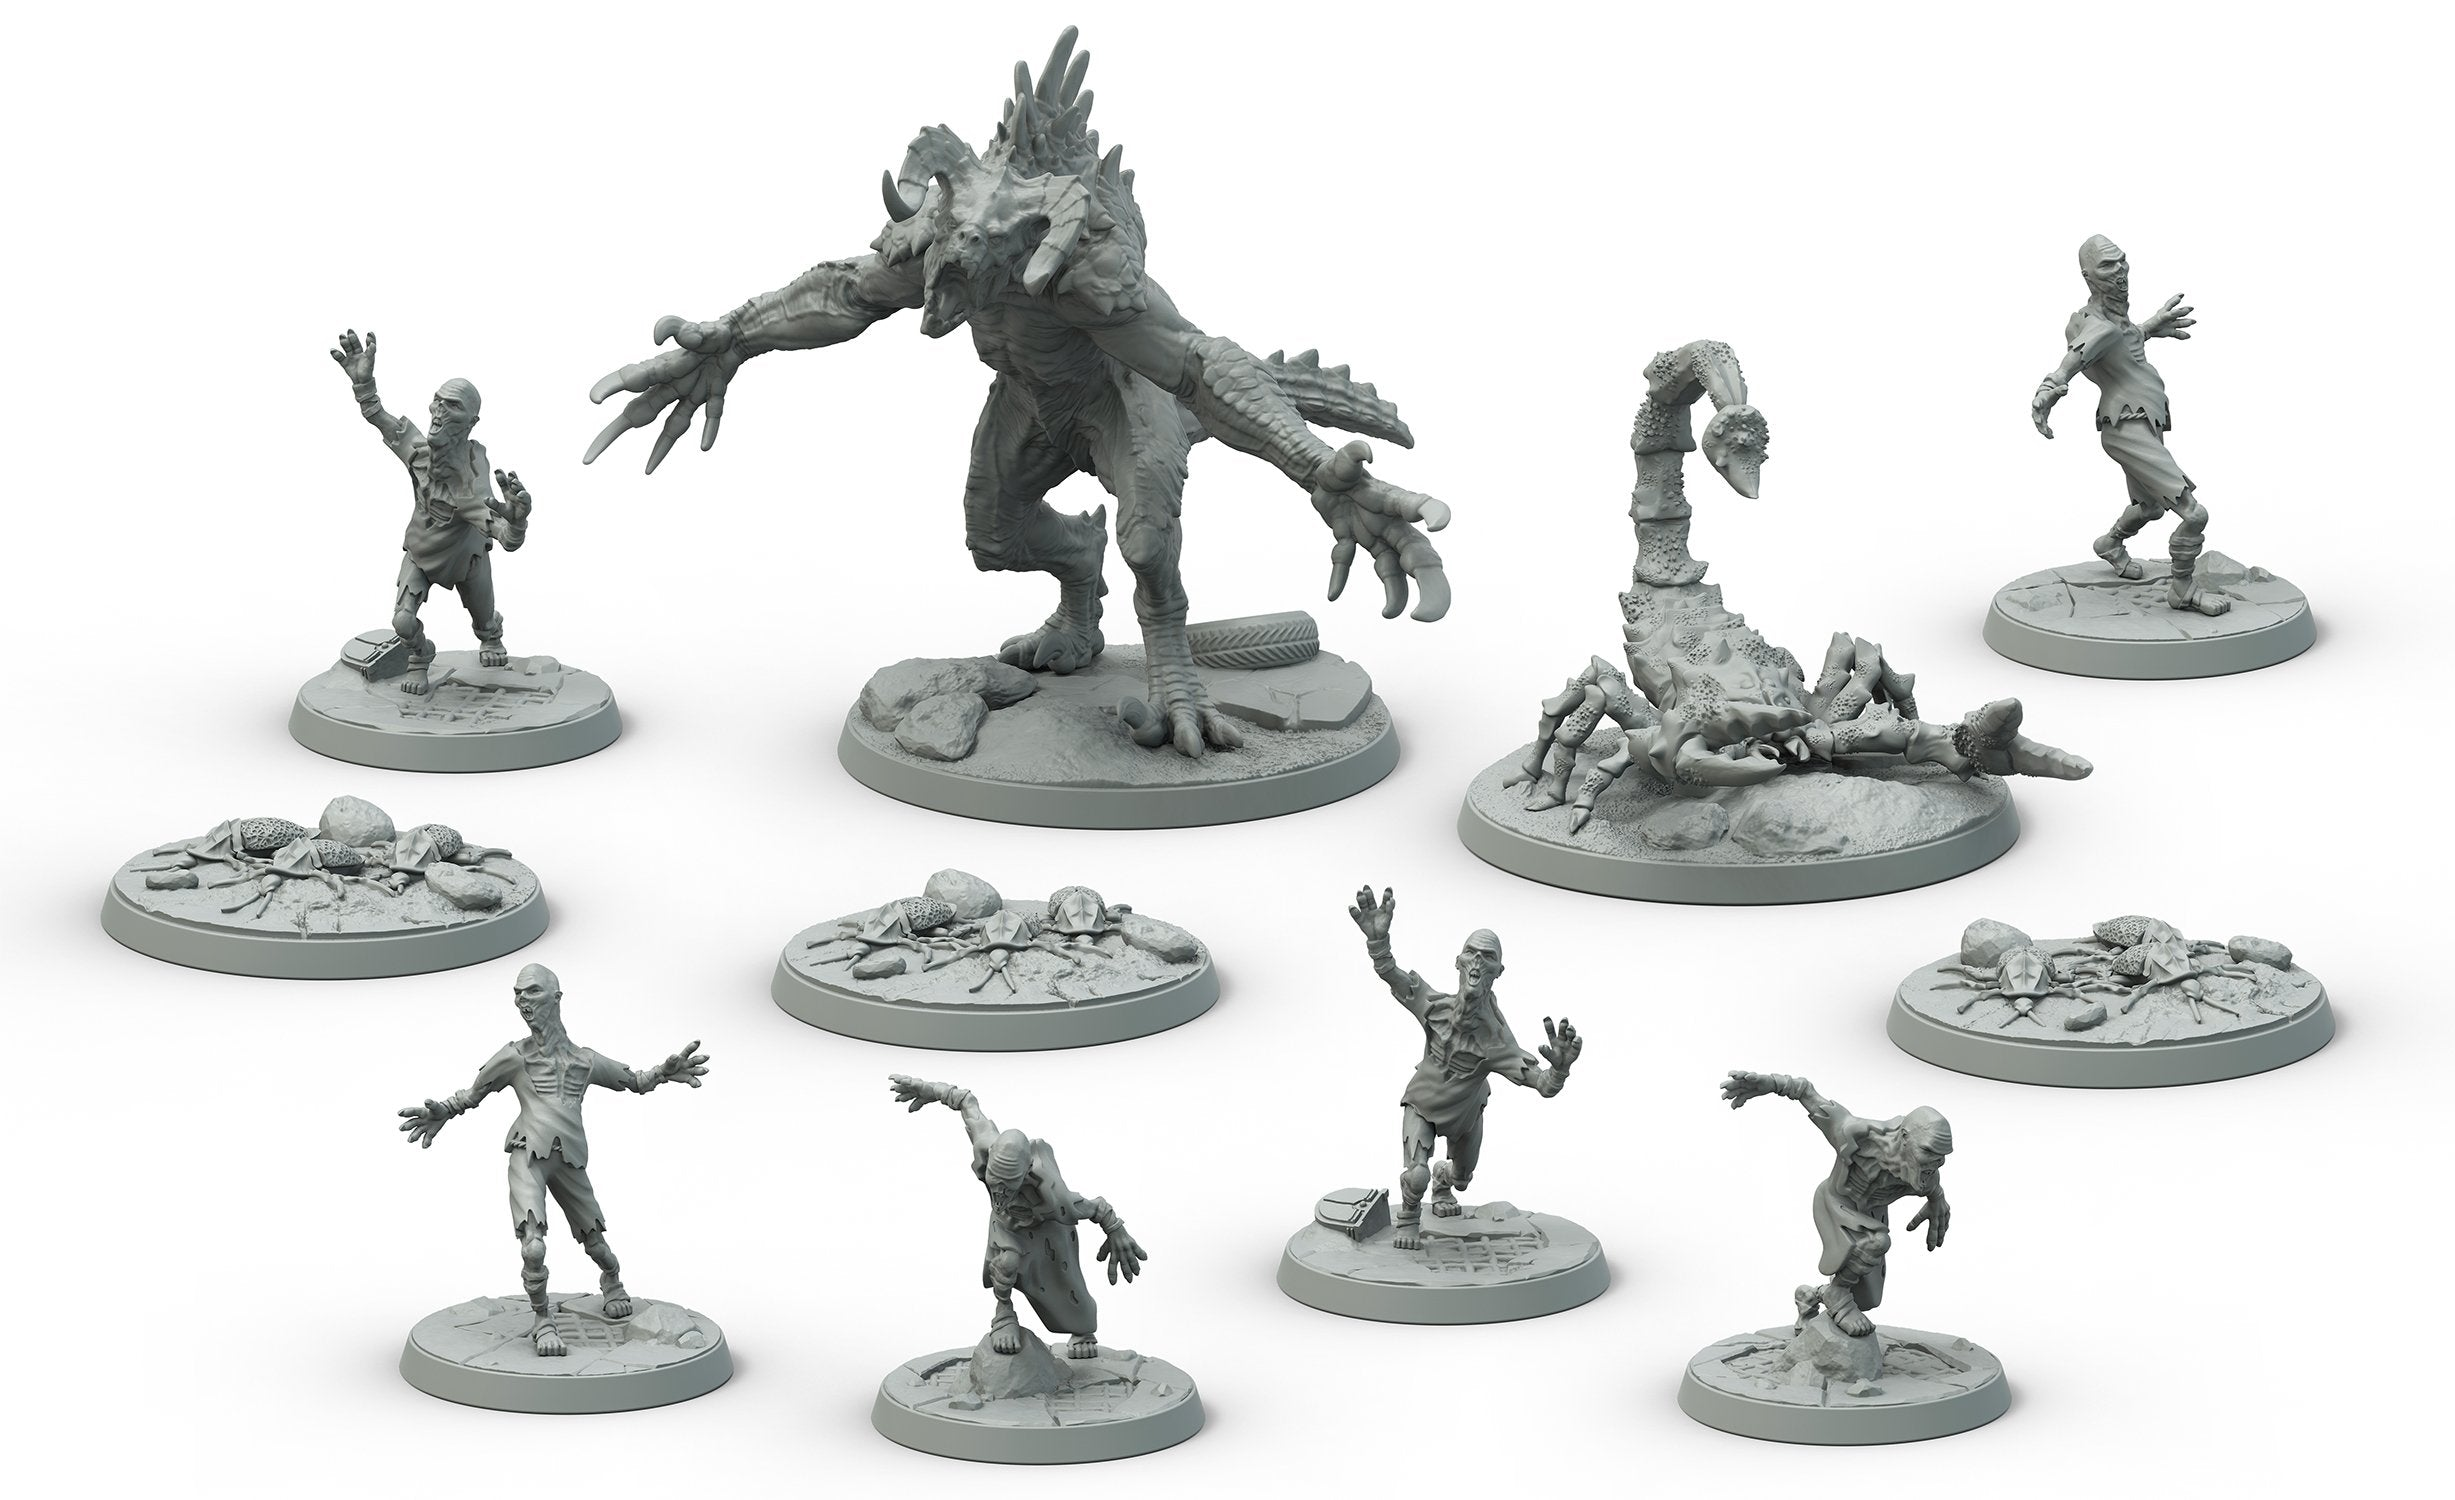 Fallout: Wasteland Warfare - Wasteland Creatures Core Box